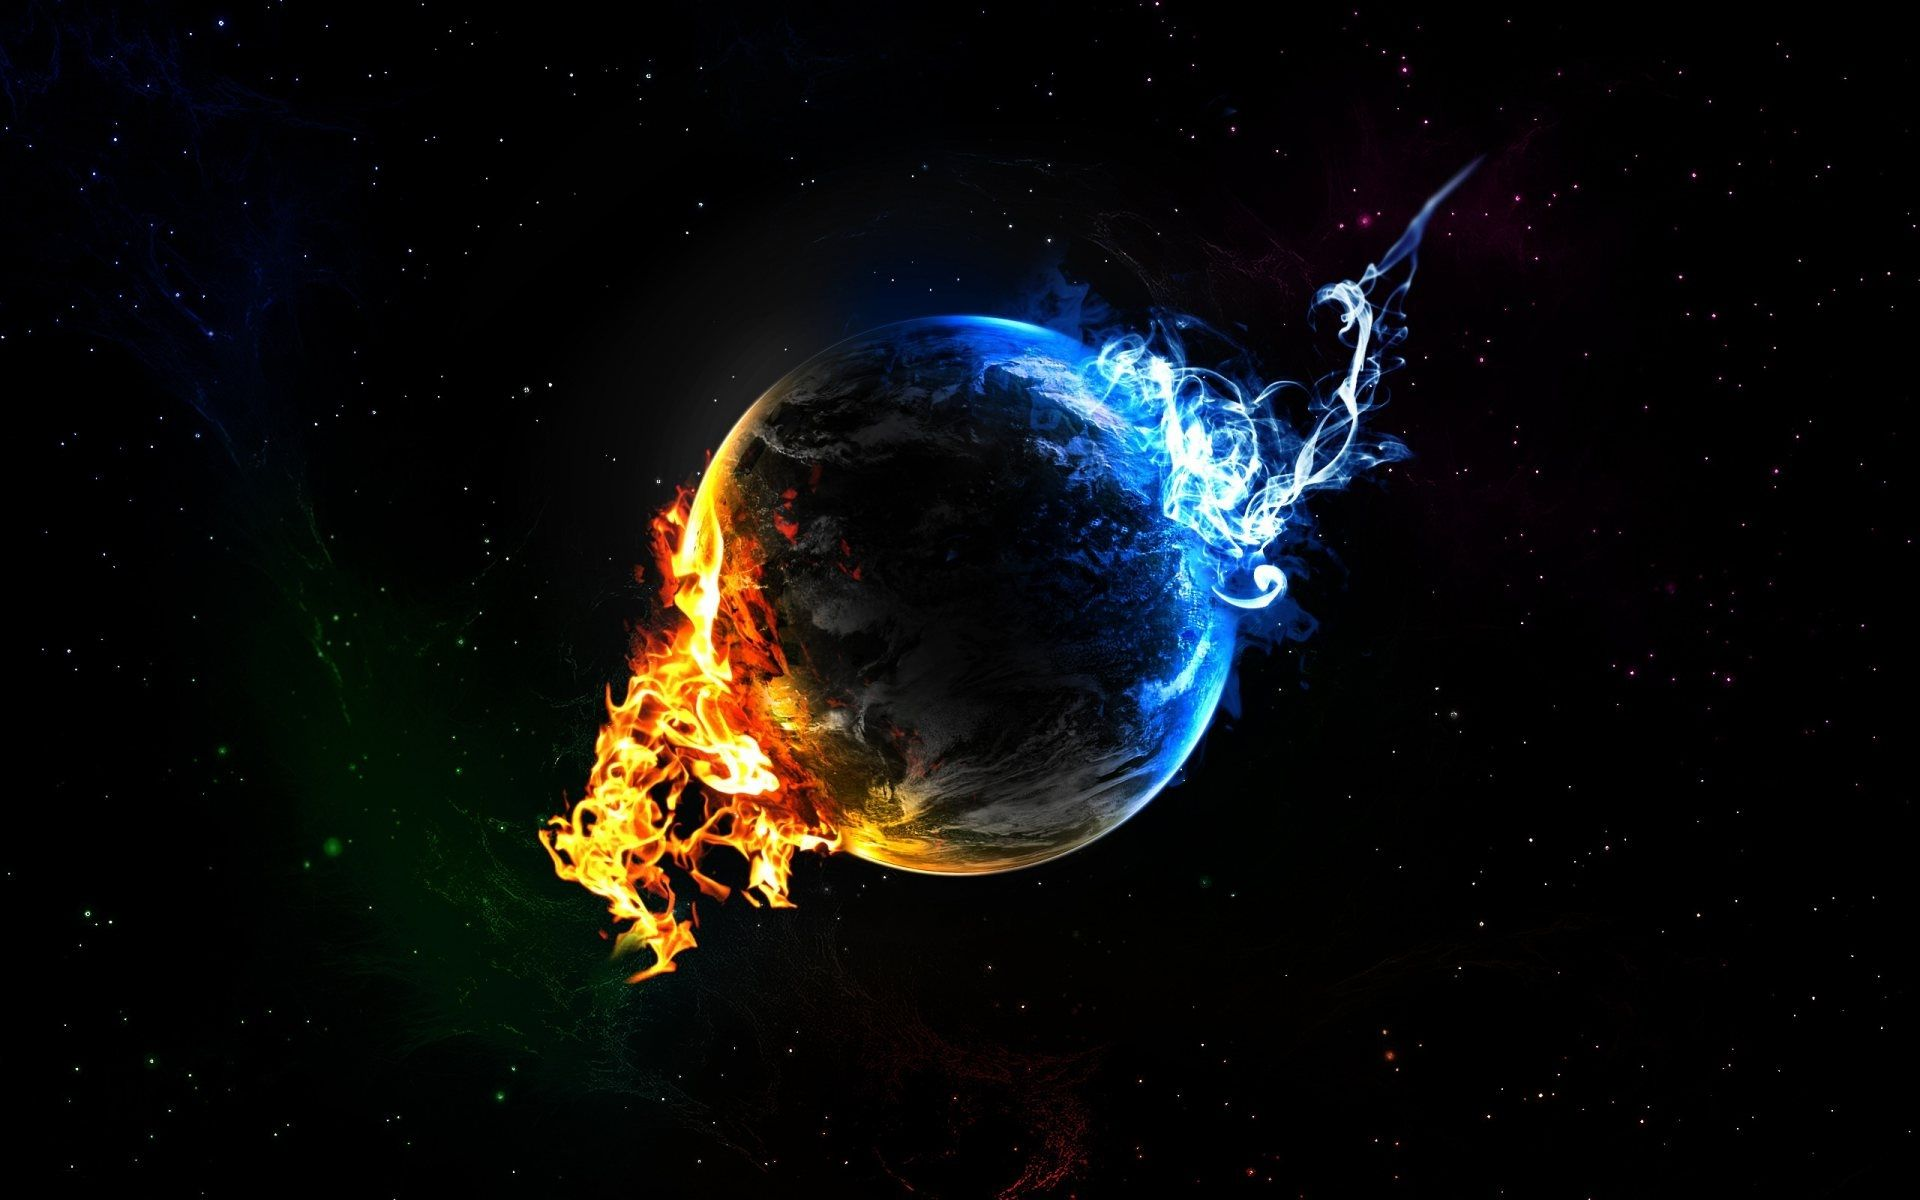 Fire And Ice Fire And Ice Fire And Ice Wallpaper Desktop Wallpaper